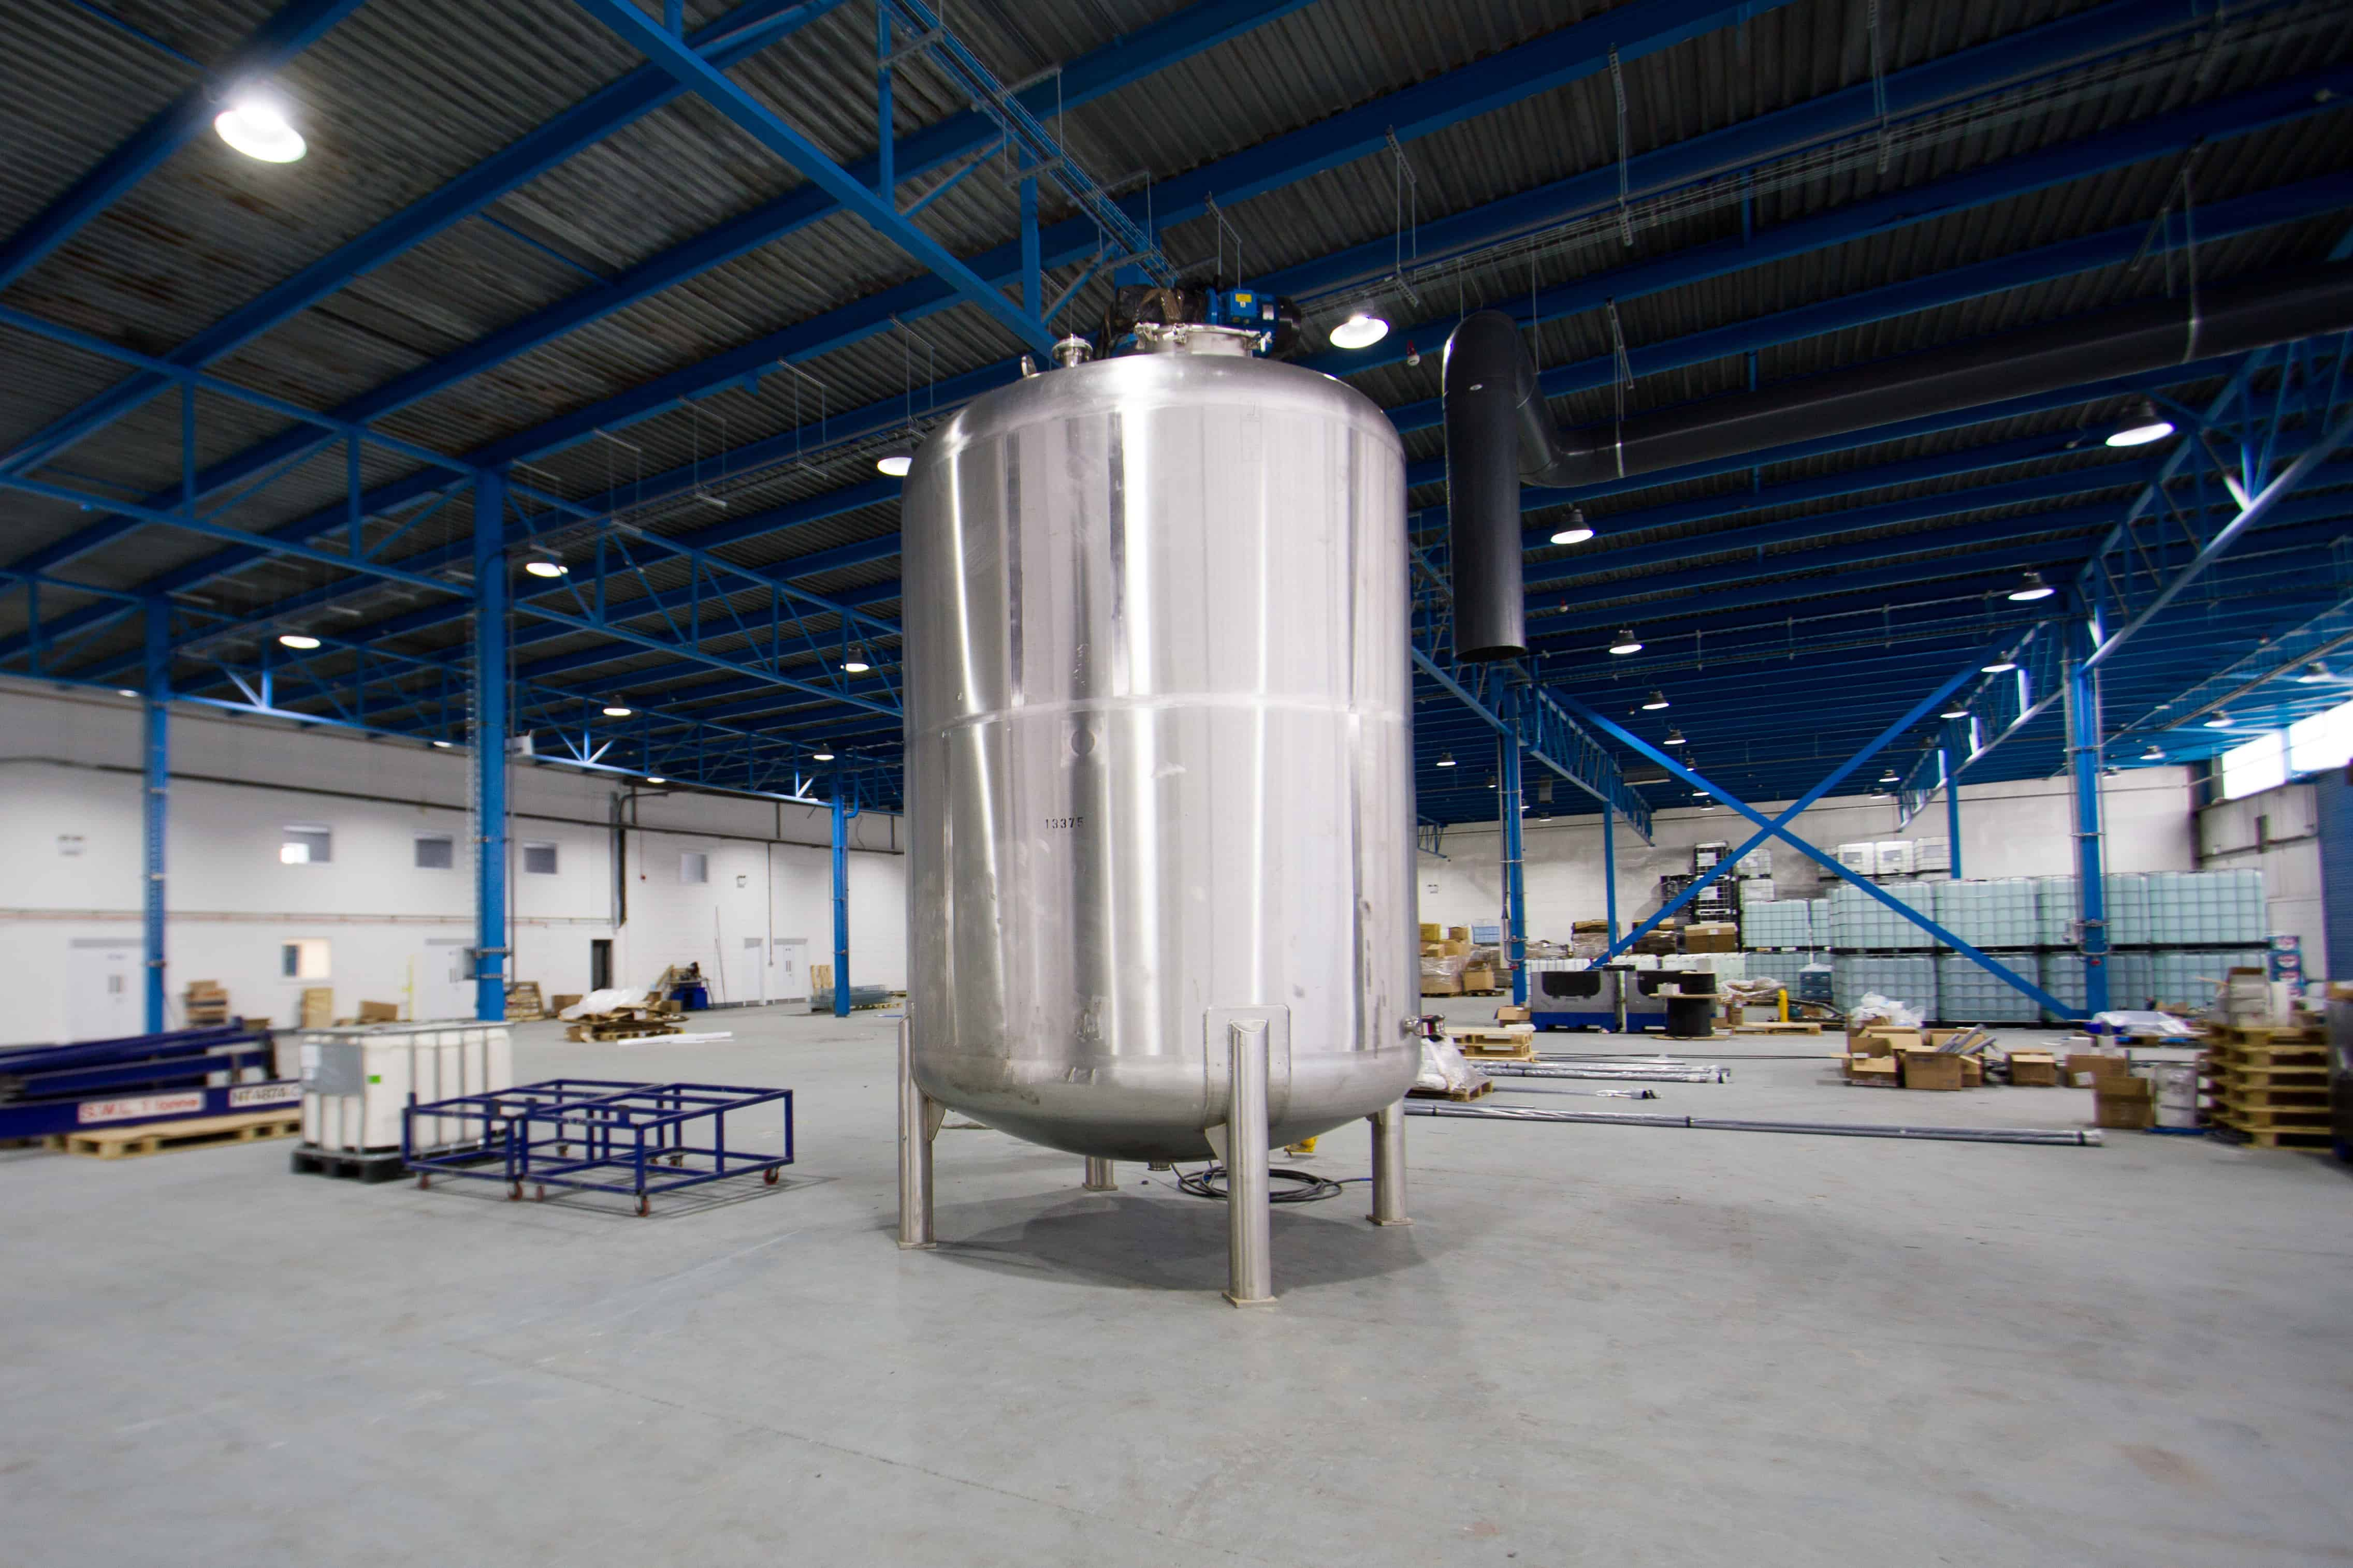 A large mixing vessel in the middle of a factory